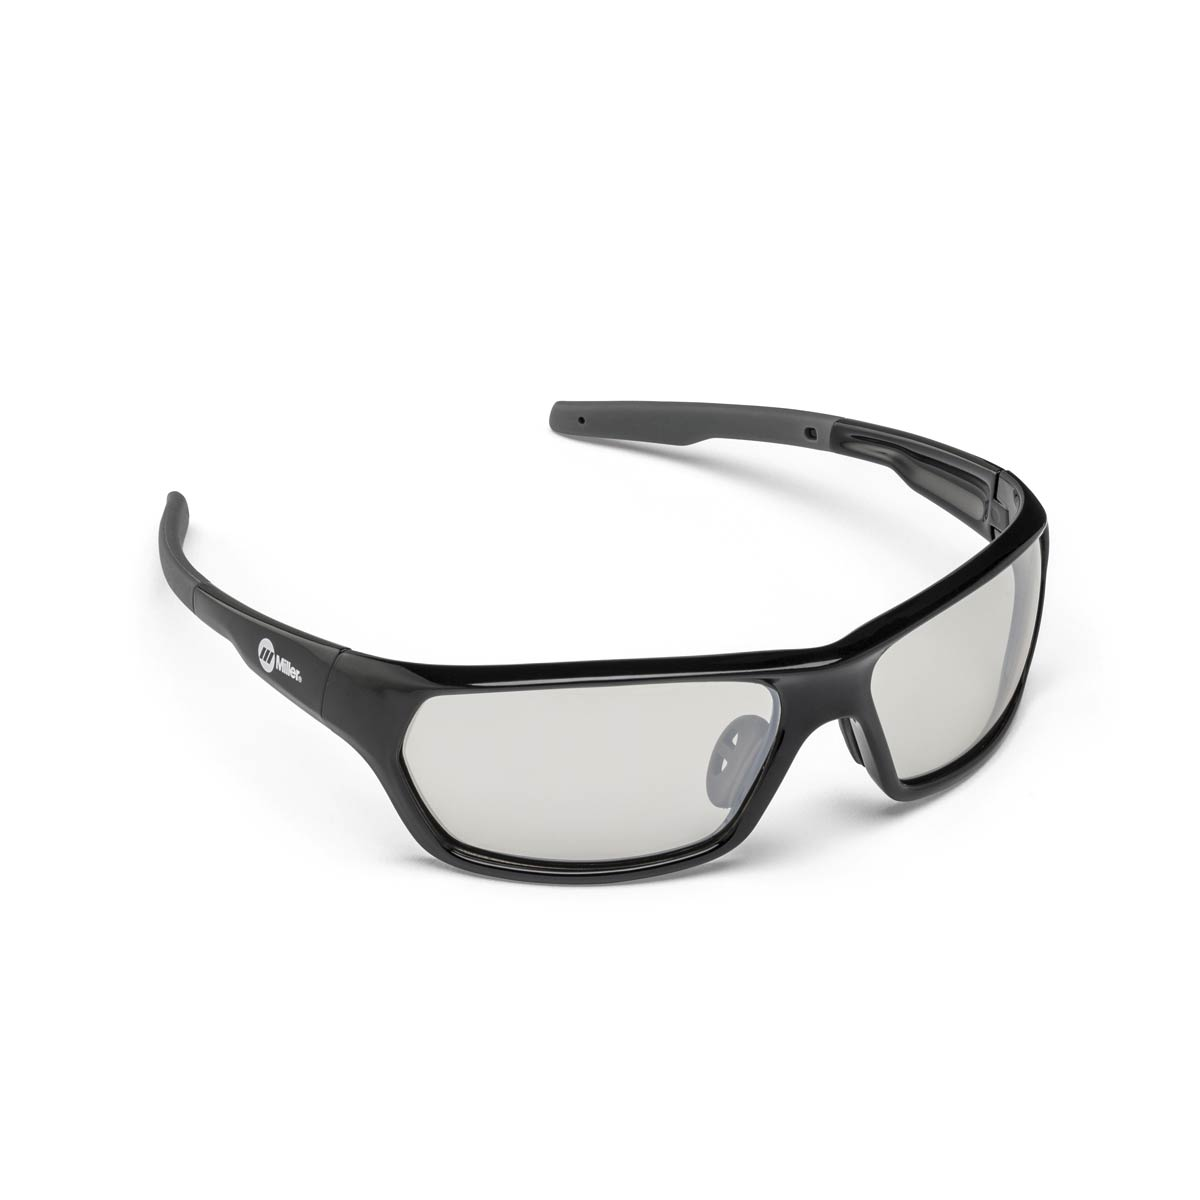 SAFETY GLASSES SLAG BLACK I/O. Part: 272202. Pack: 1